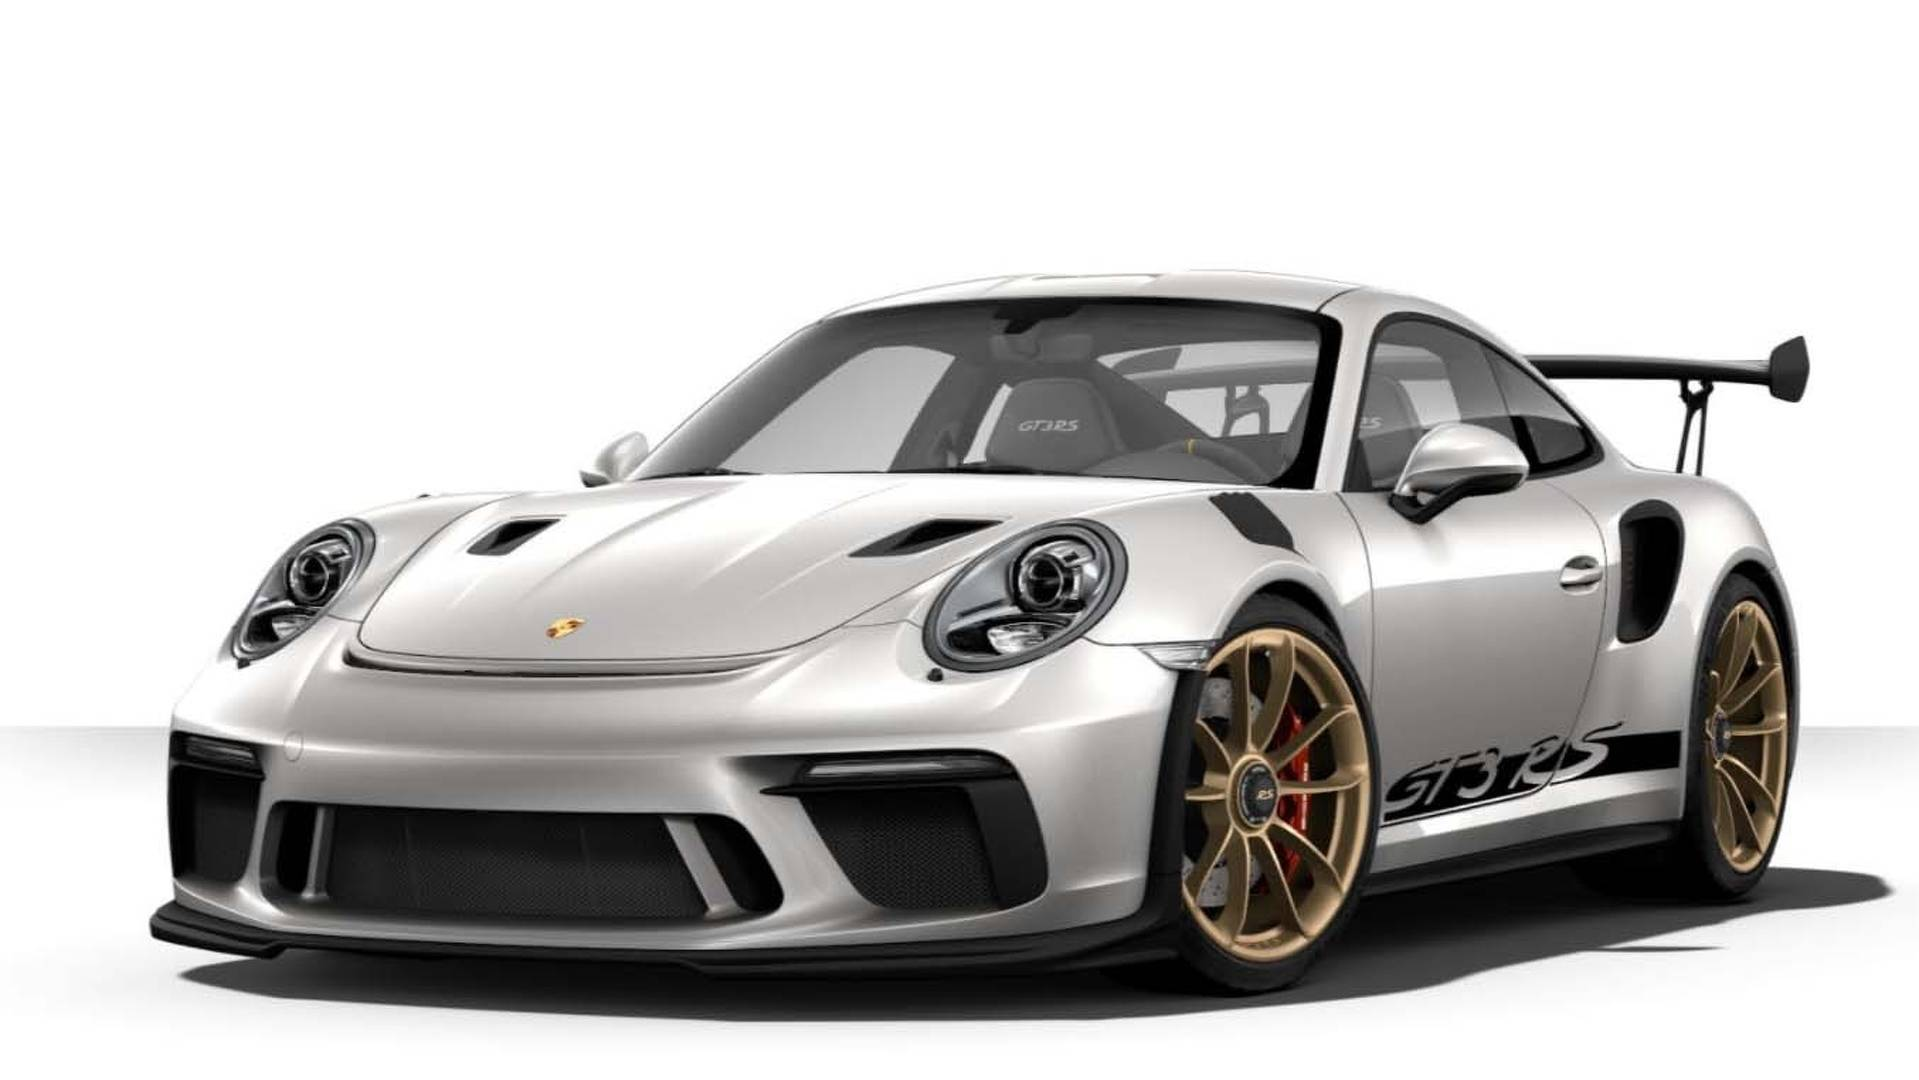 Porsche Gt3 Rs Price >> The Most Expensive Porsche 911 Gt3 Rs Costs 253 240